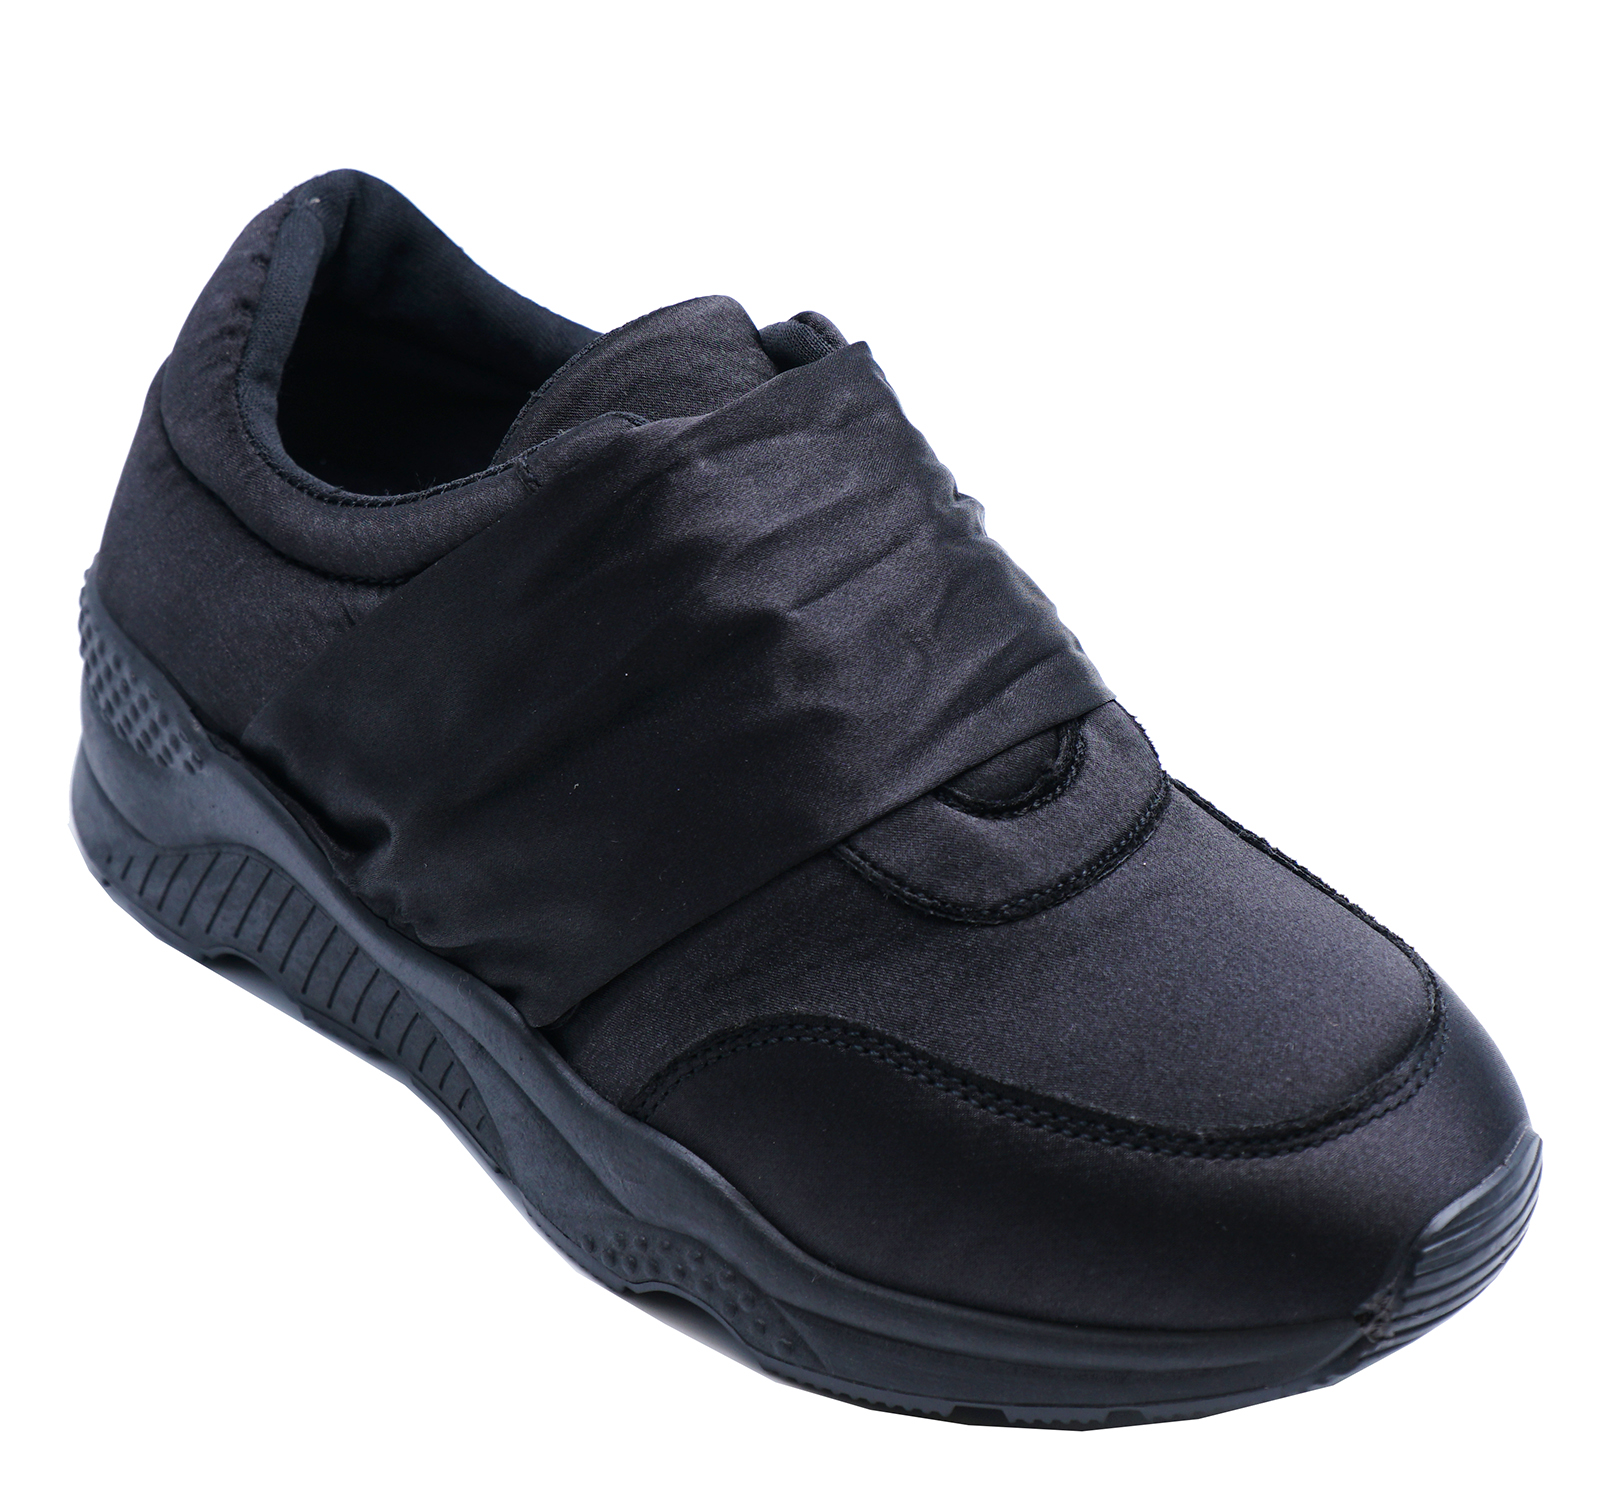 WOMENS BLACK SATIN SLIP-ON TRAINERS CASUAL PUMPS PLIMSOLLS SPORTS SHOES 3-8